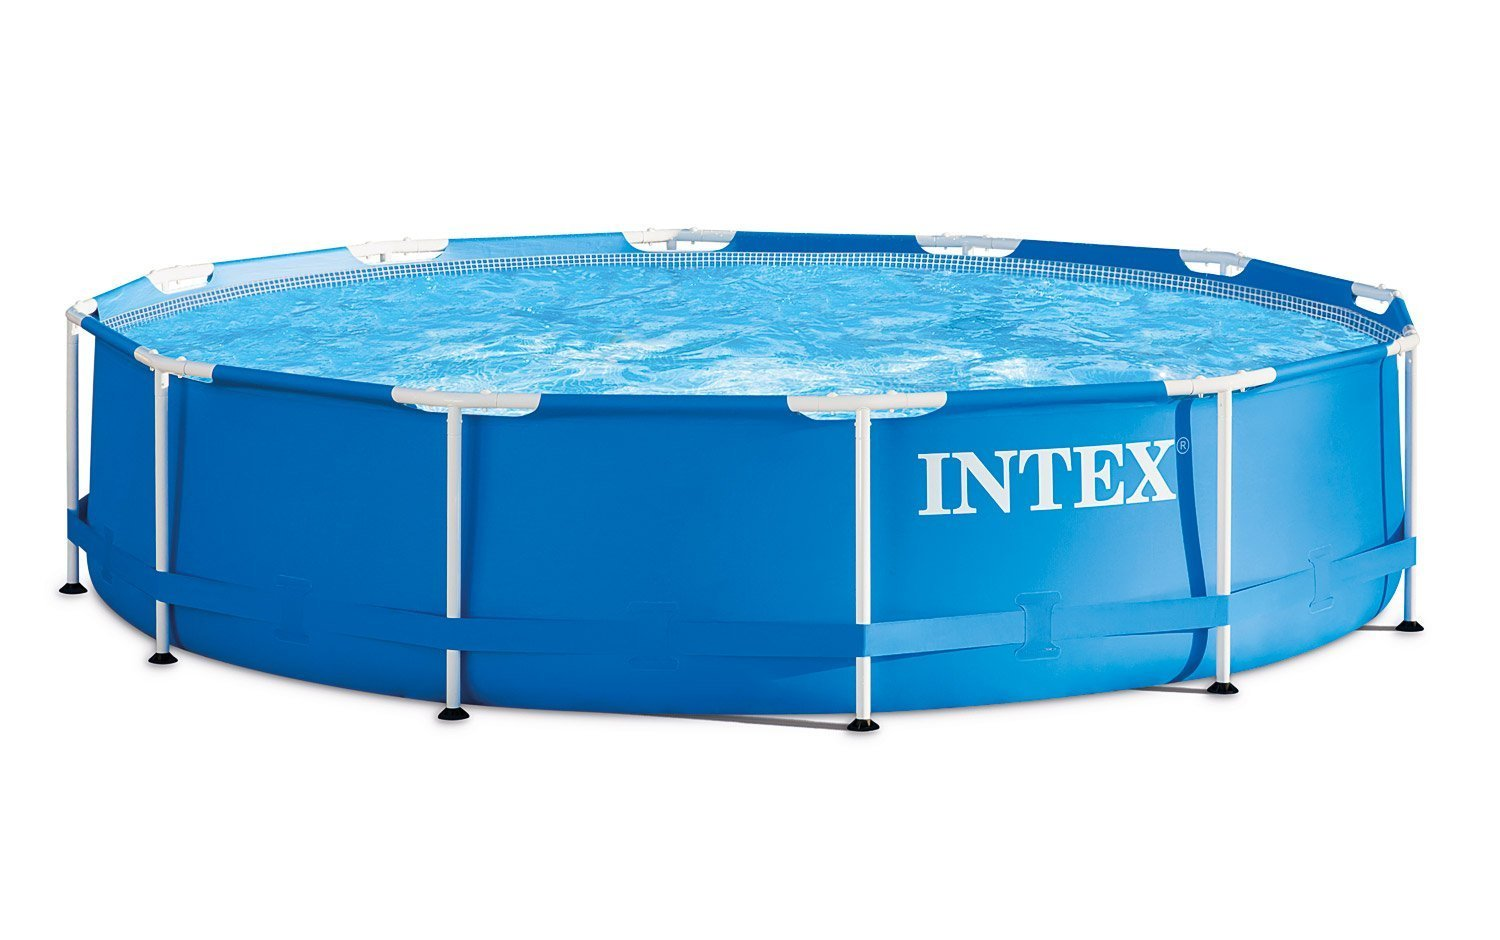 Gartenpool kaufen, Intex Premium Pool